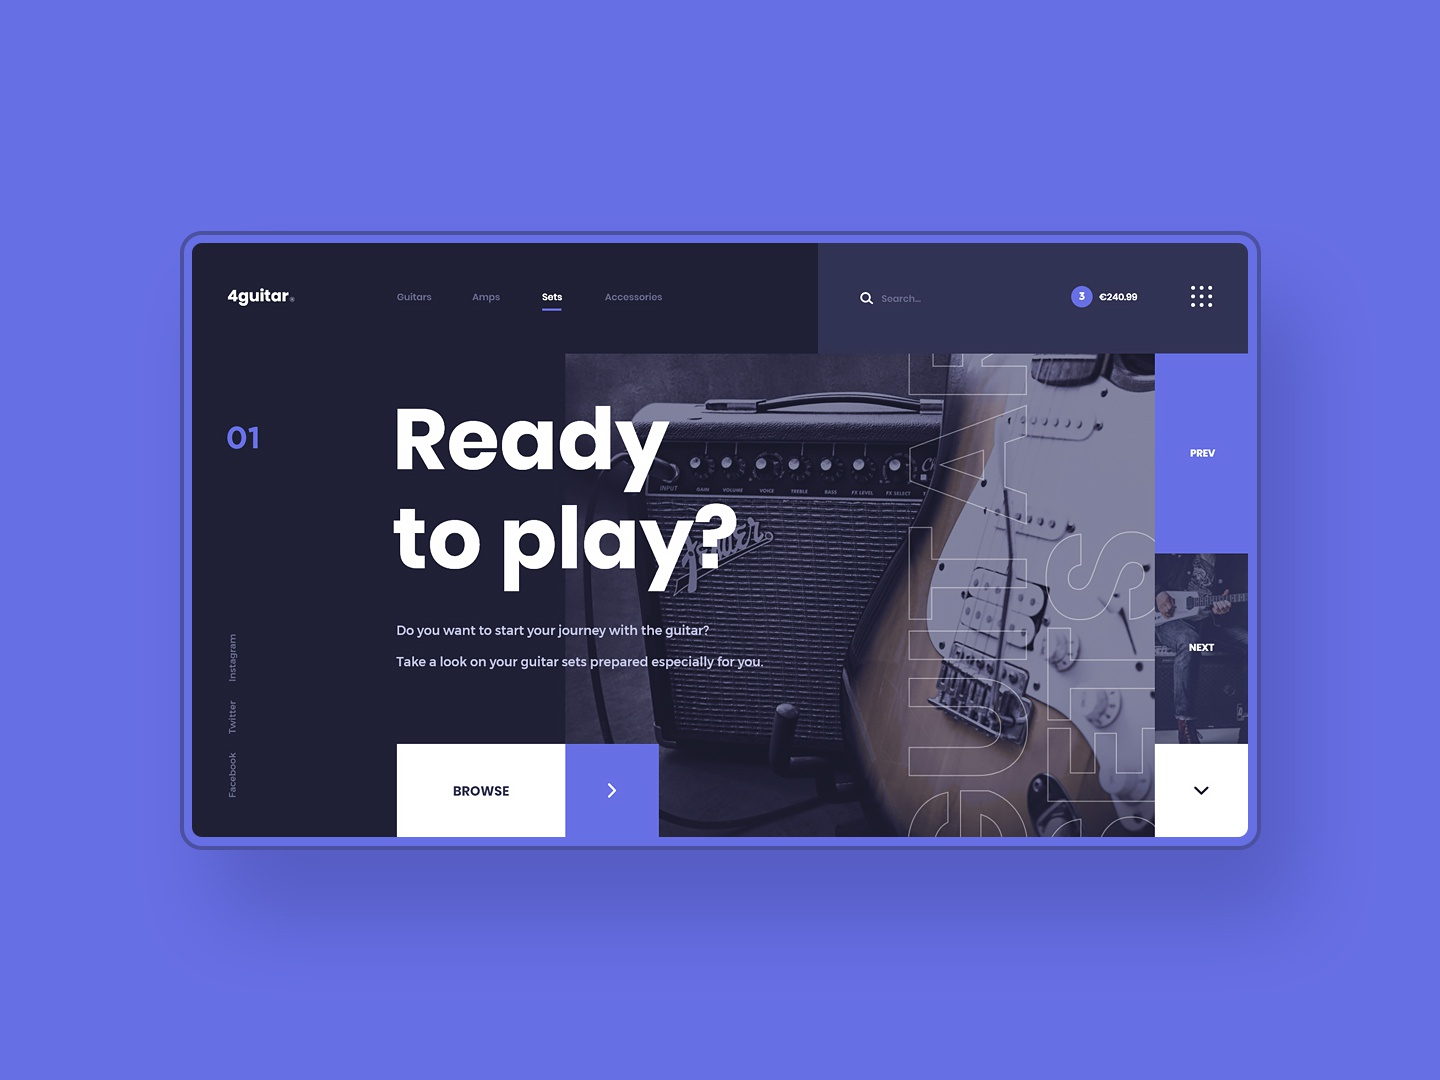 #3 Photo & Design photography photo ecommerce white store records amp guitar shop instrument music purple blue dark flat homepage design website ux ui